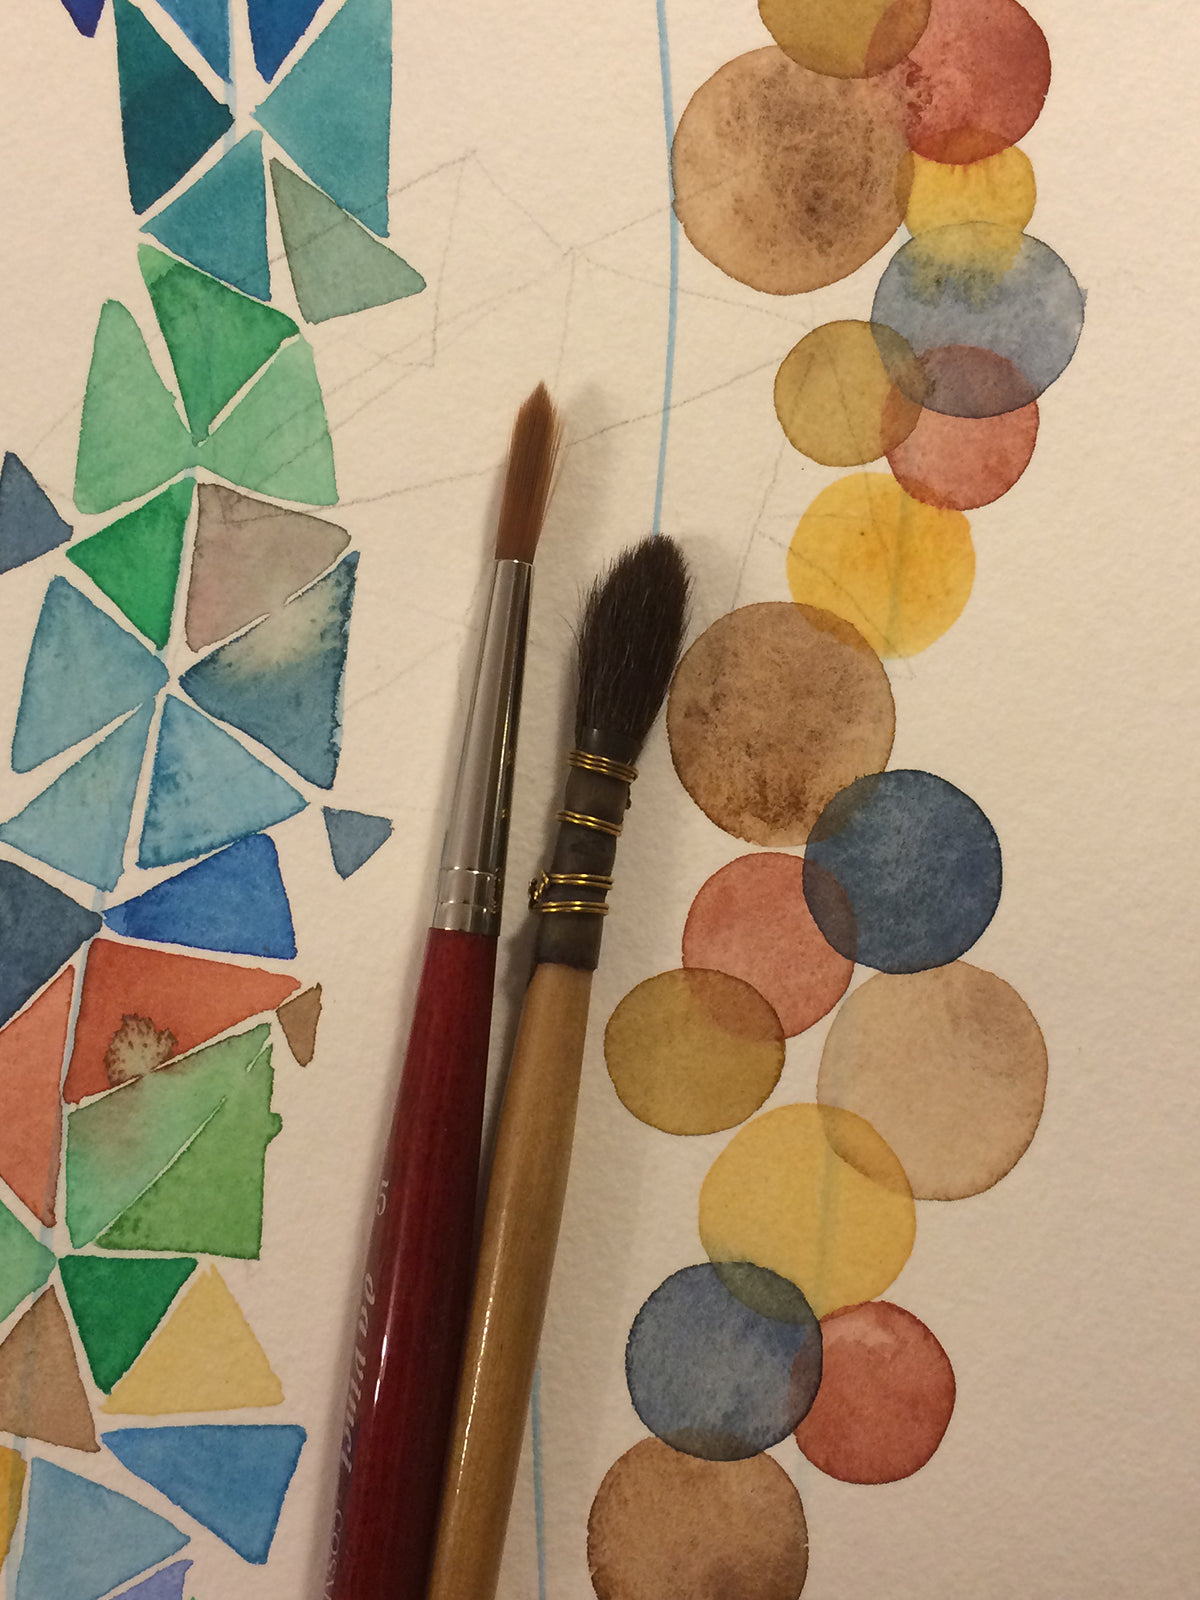 Geometric shapes of watercolor >>> dots and diagrids